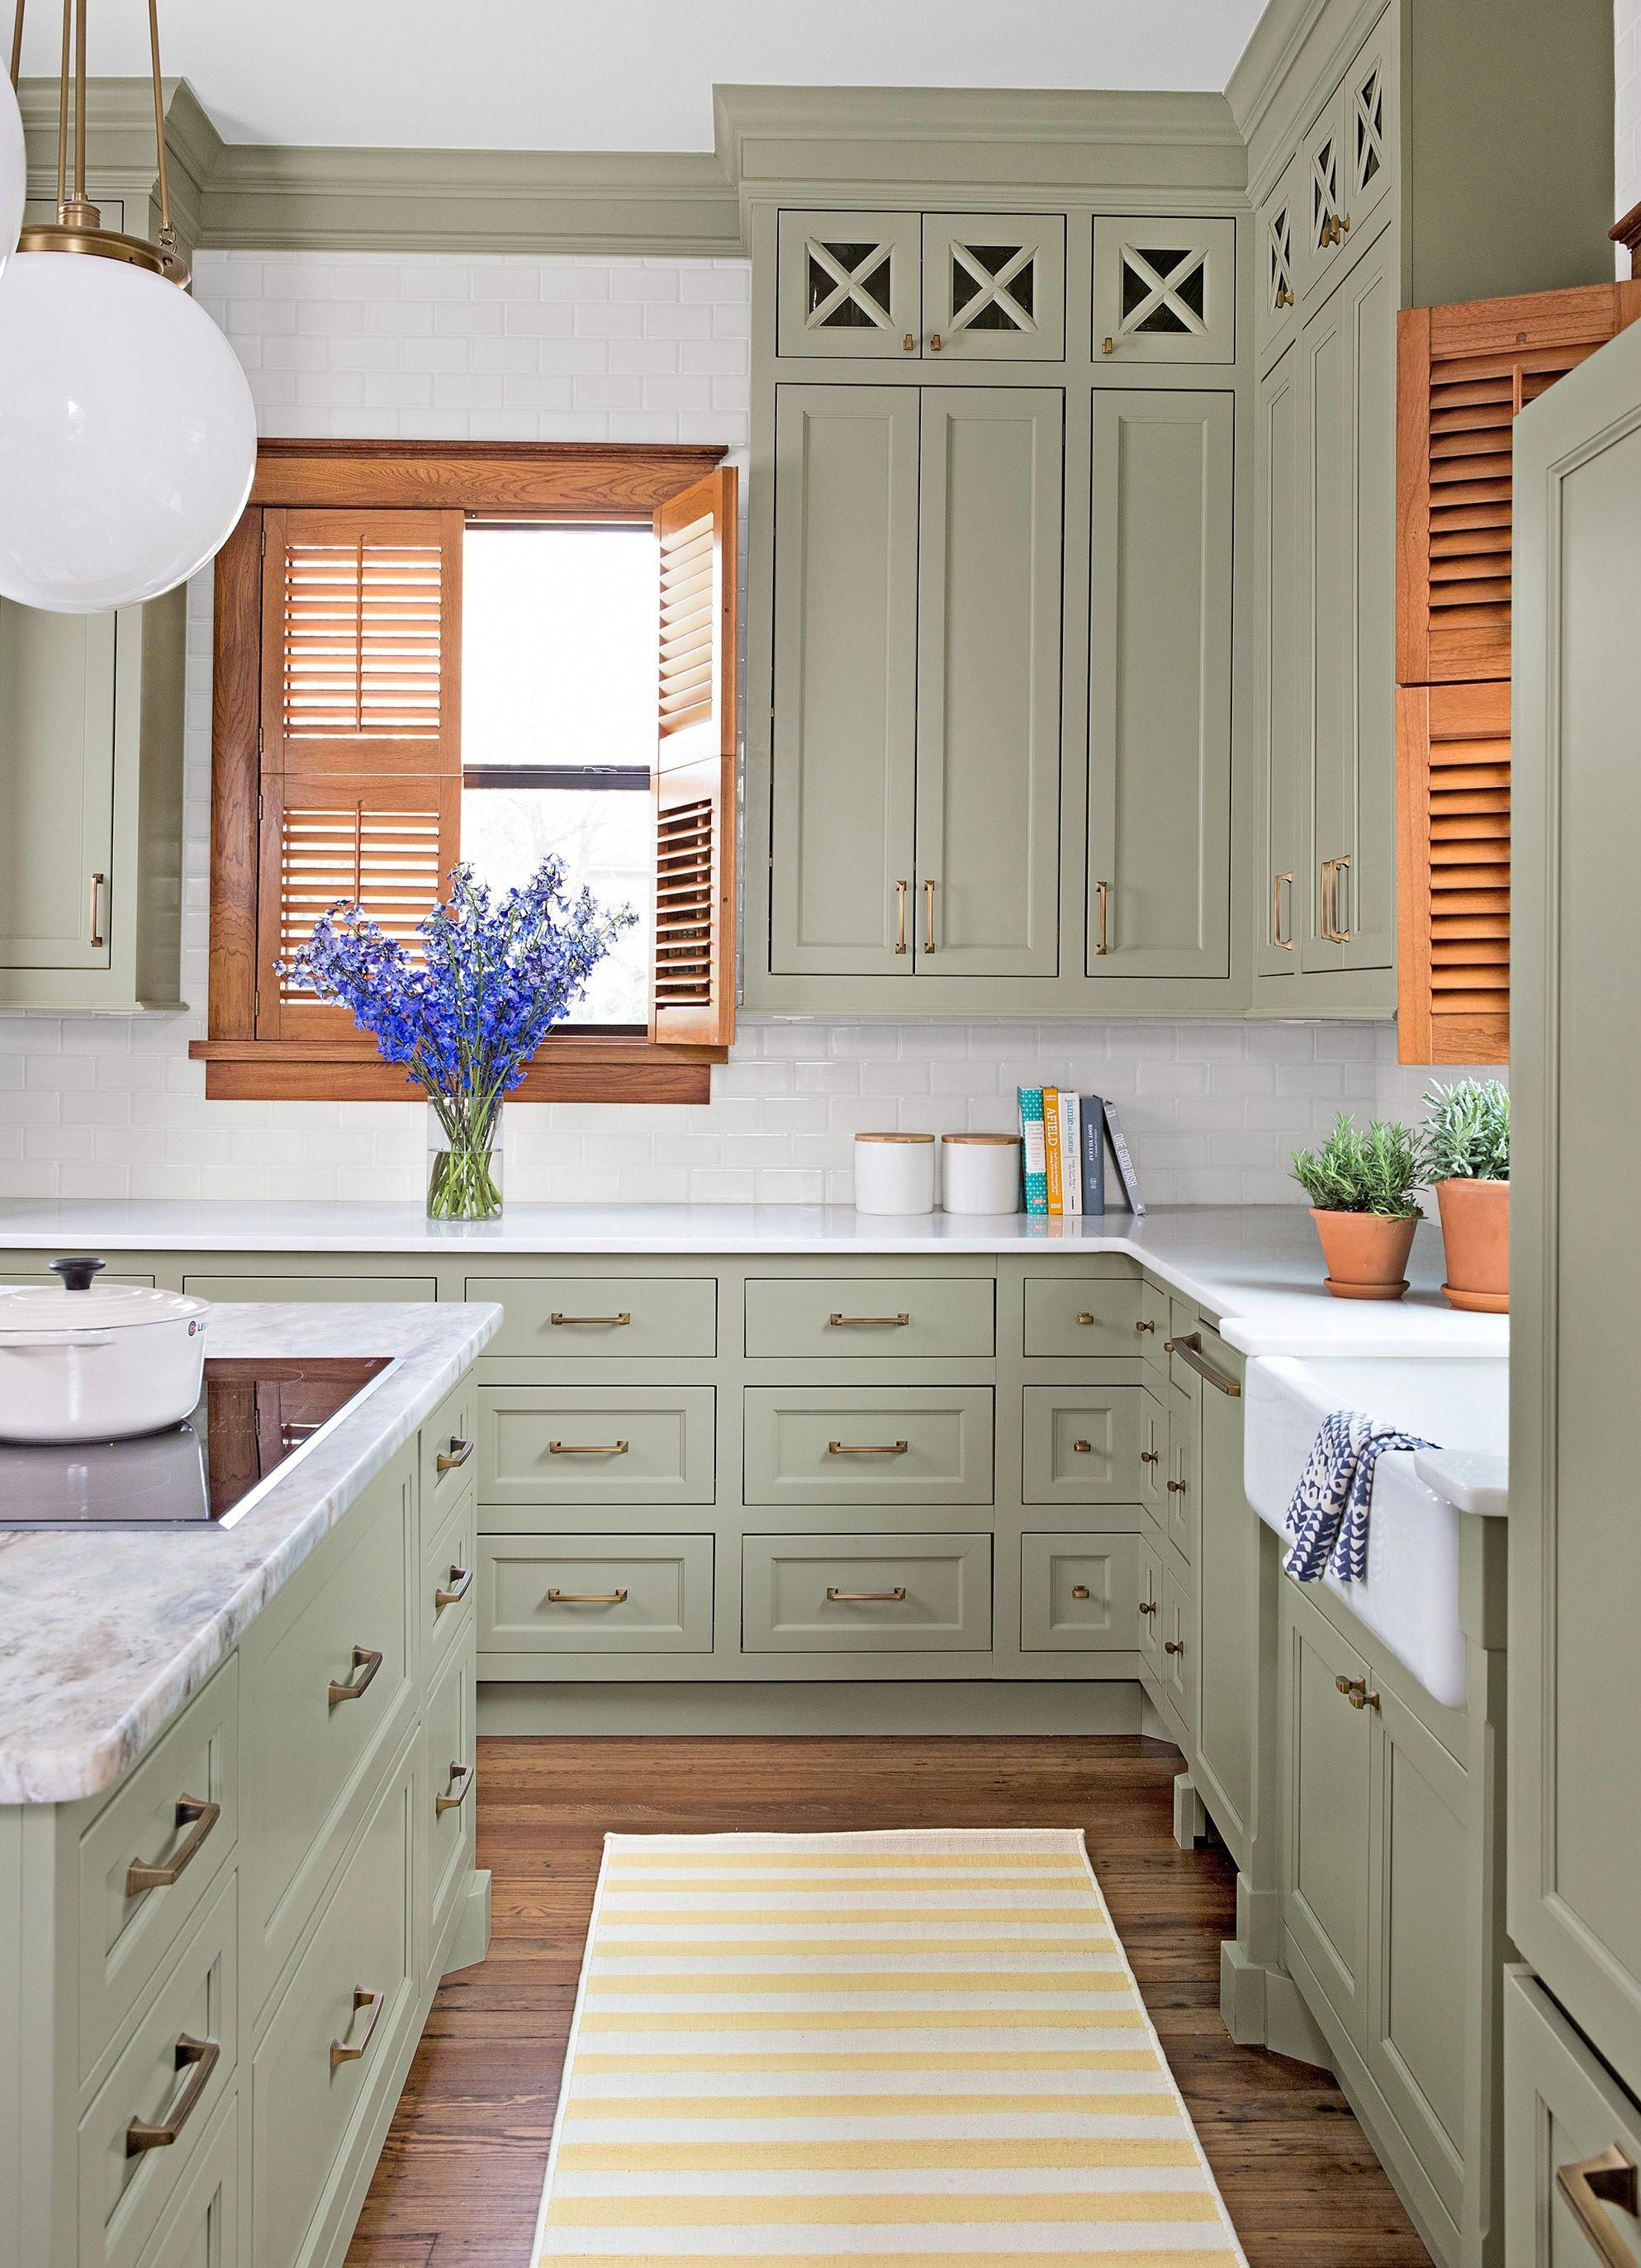 Some Imitations Simply Make Sense Lumber Giant Weyerhaeuser Offers A Fast Growing Natural Kitchen Cabinets Painted Grey Best Kitchen Cabinets Kitchen Interior